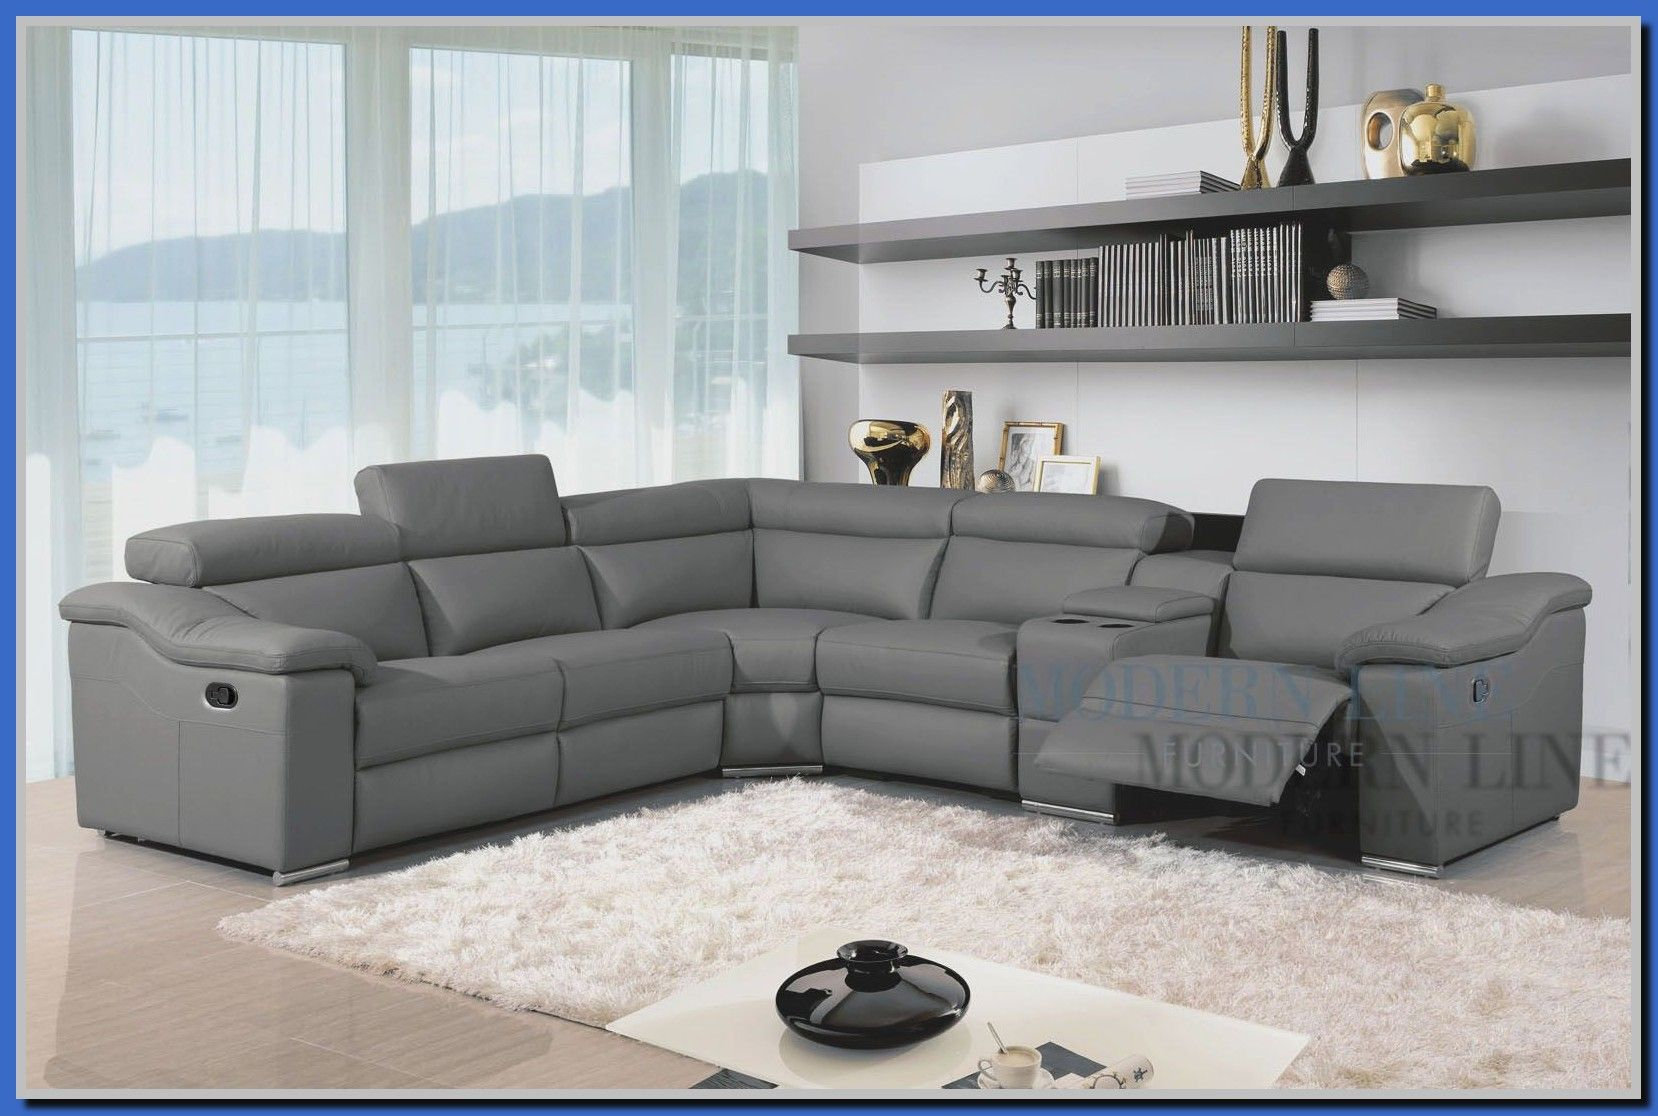 54 Reference Of Modern Sectional Couch With Recliners In 2020 Sectional Sofa With Recliner Grey Sectional Sofa Leather Sectional Sofas